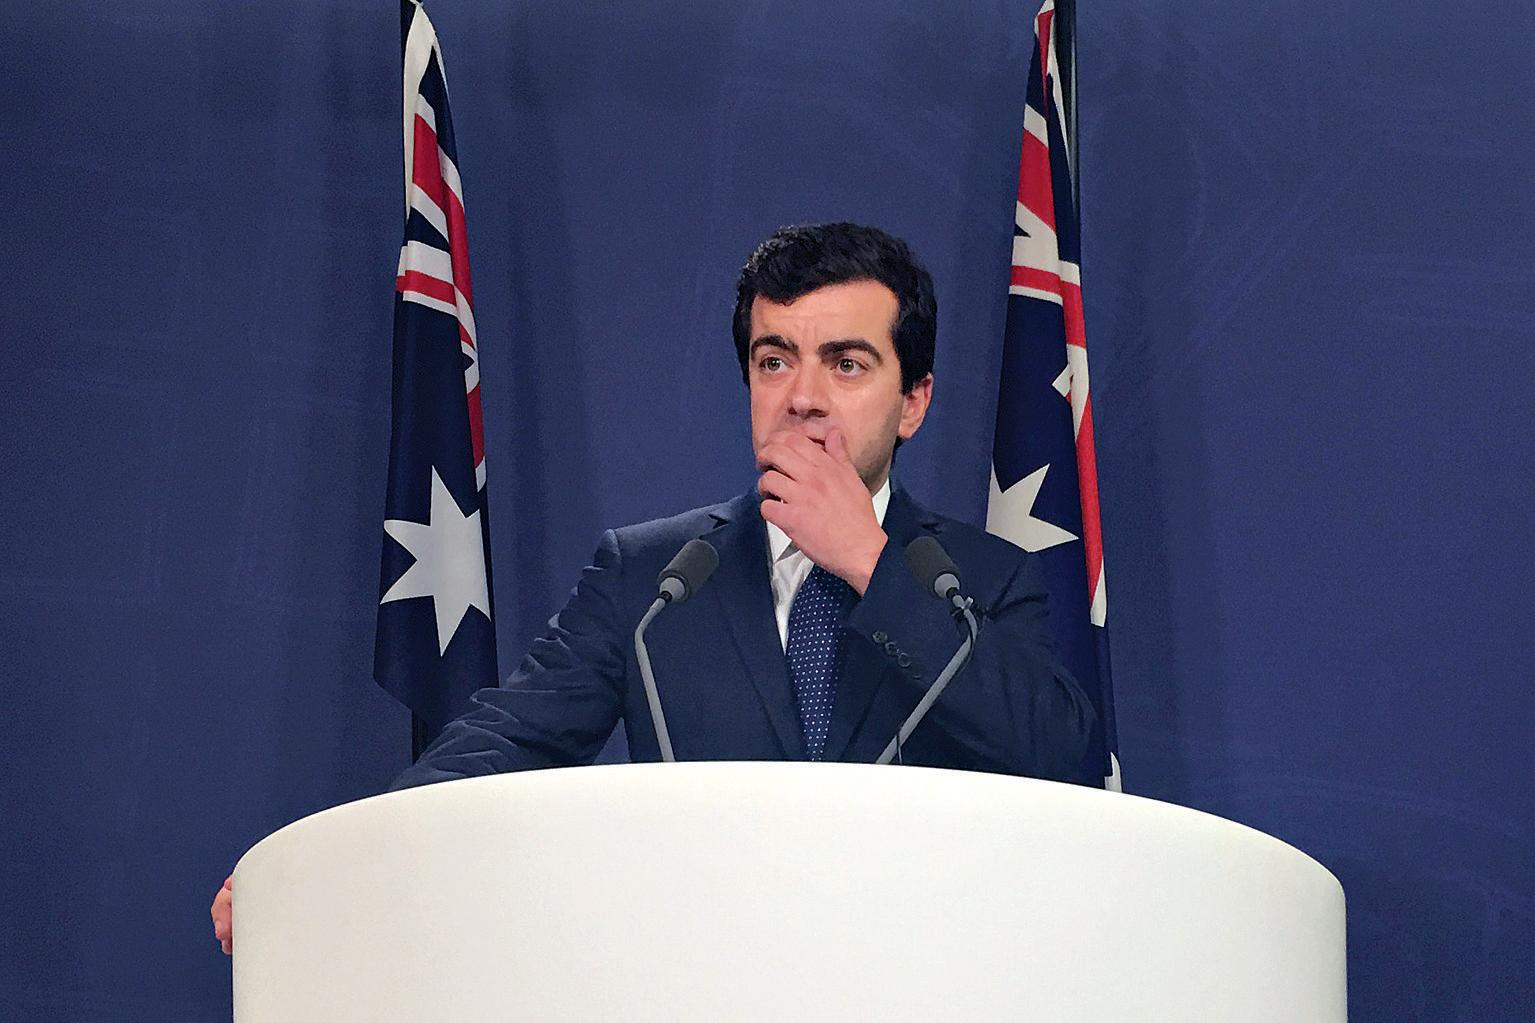 Labor Senator Sam Dastyari speaks to the media during a press conference over